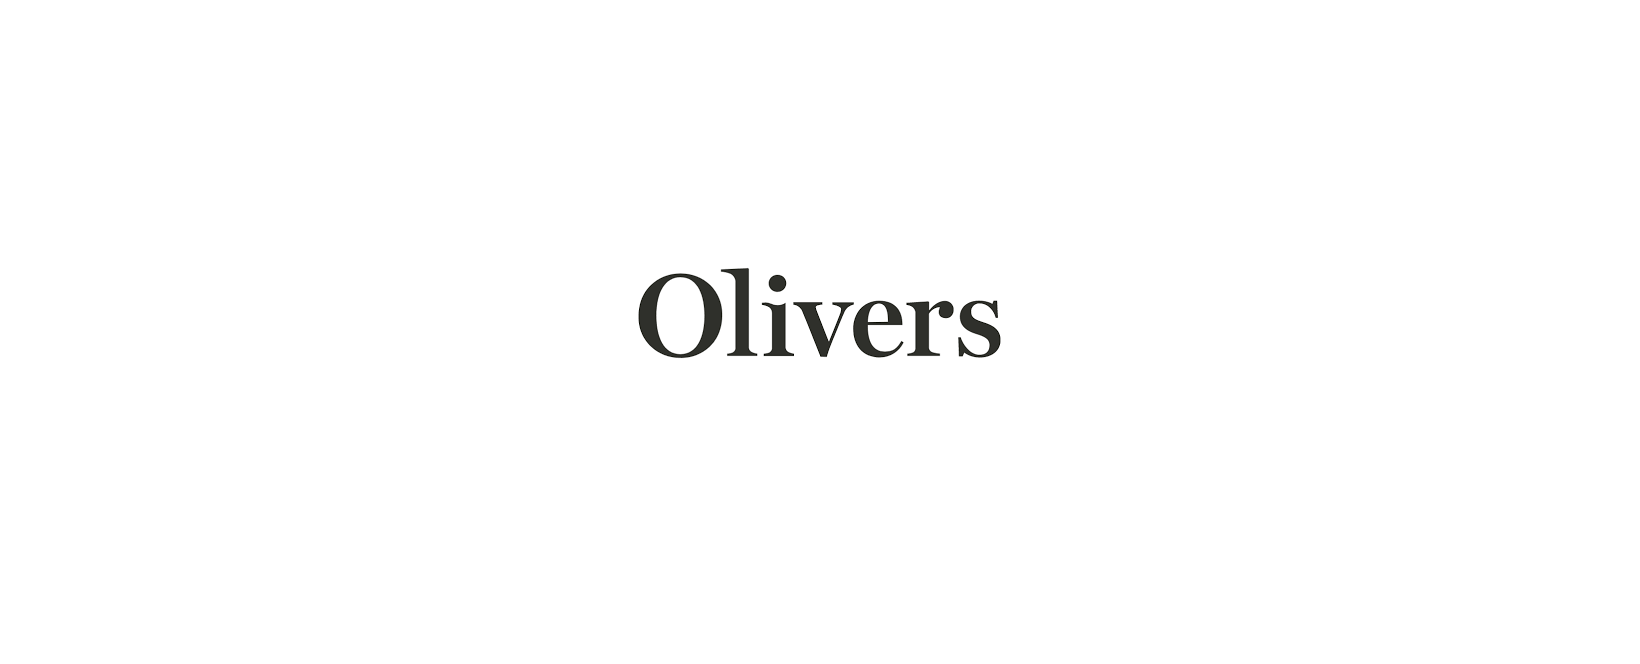 Olivers Coupon Code 2021